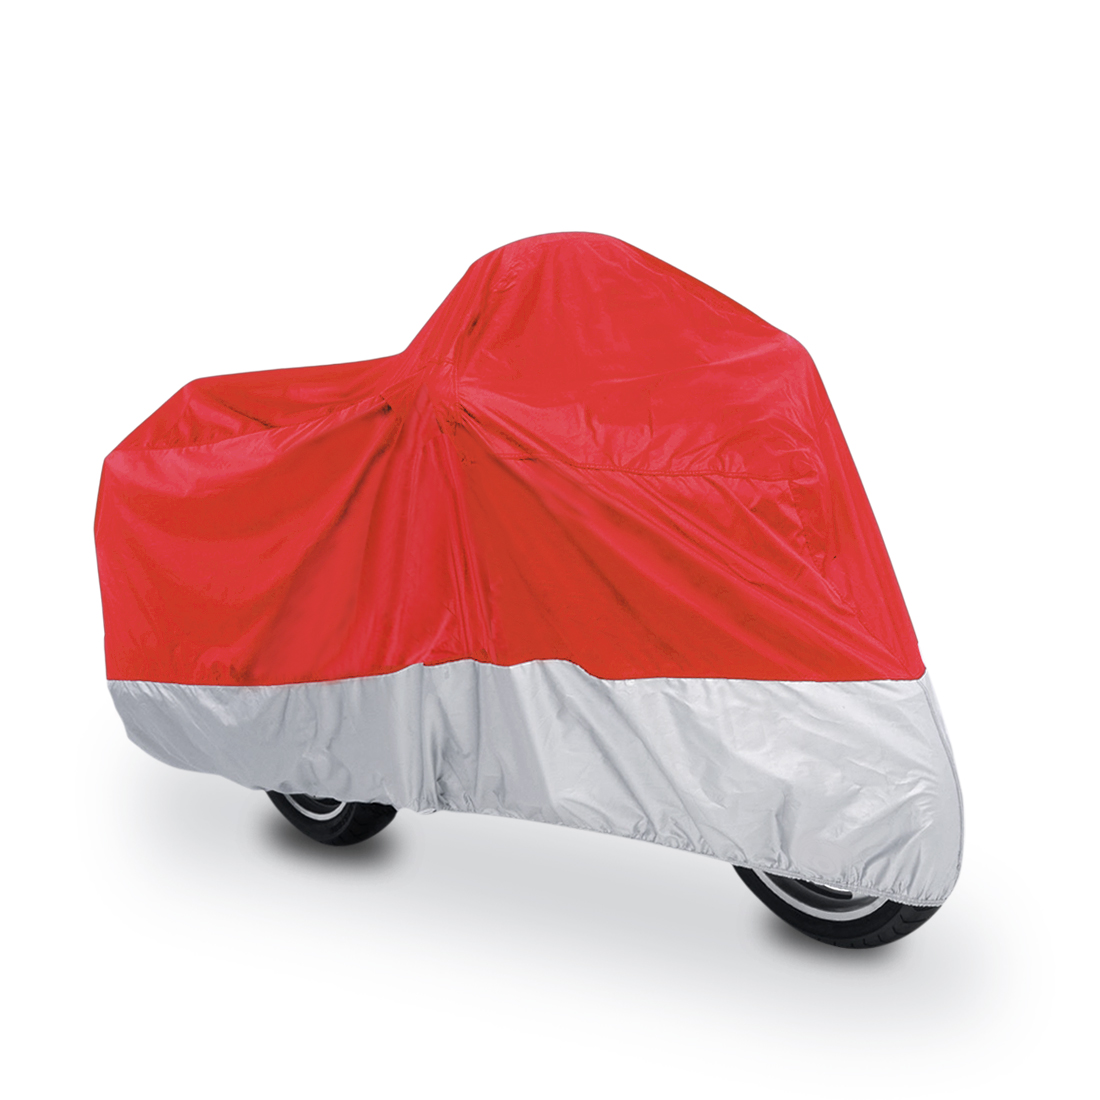 XXXL 180T Rain Dust Motorcycle Scooter Cover Red+Silver Outdoor UV Protector